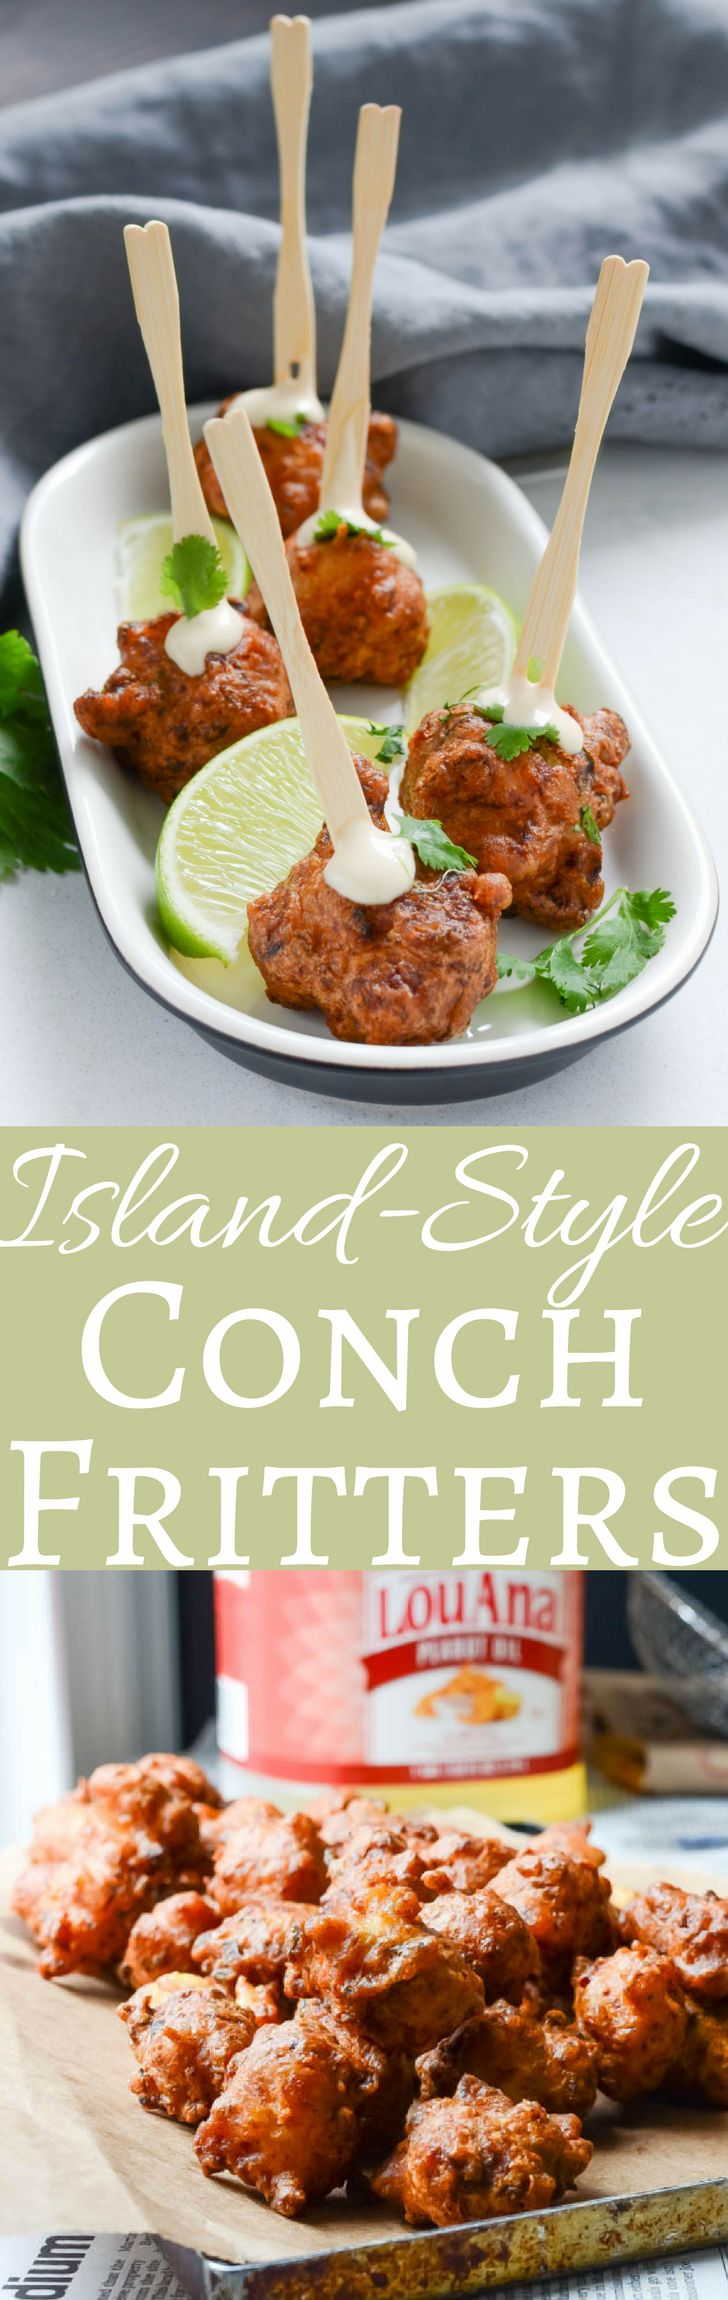 #ad #CreateWithOil #CollectiveBias This authentic recipe for conch fritters is easier than you think! Chunks of tender conch blended with veggies, hot pepper and a light, crispy beer batter are the closest thing to the Bahamas without the plane ticket!